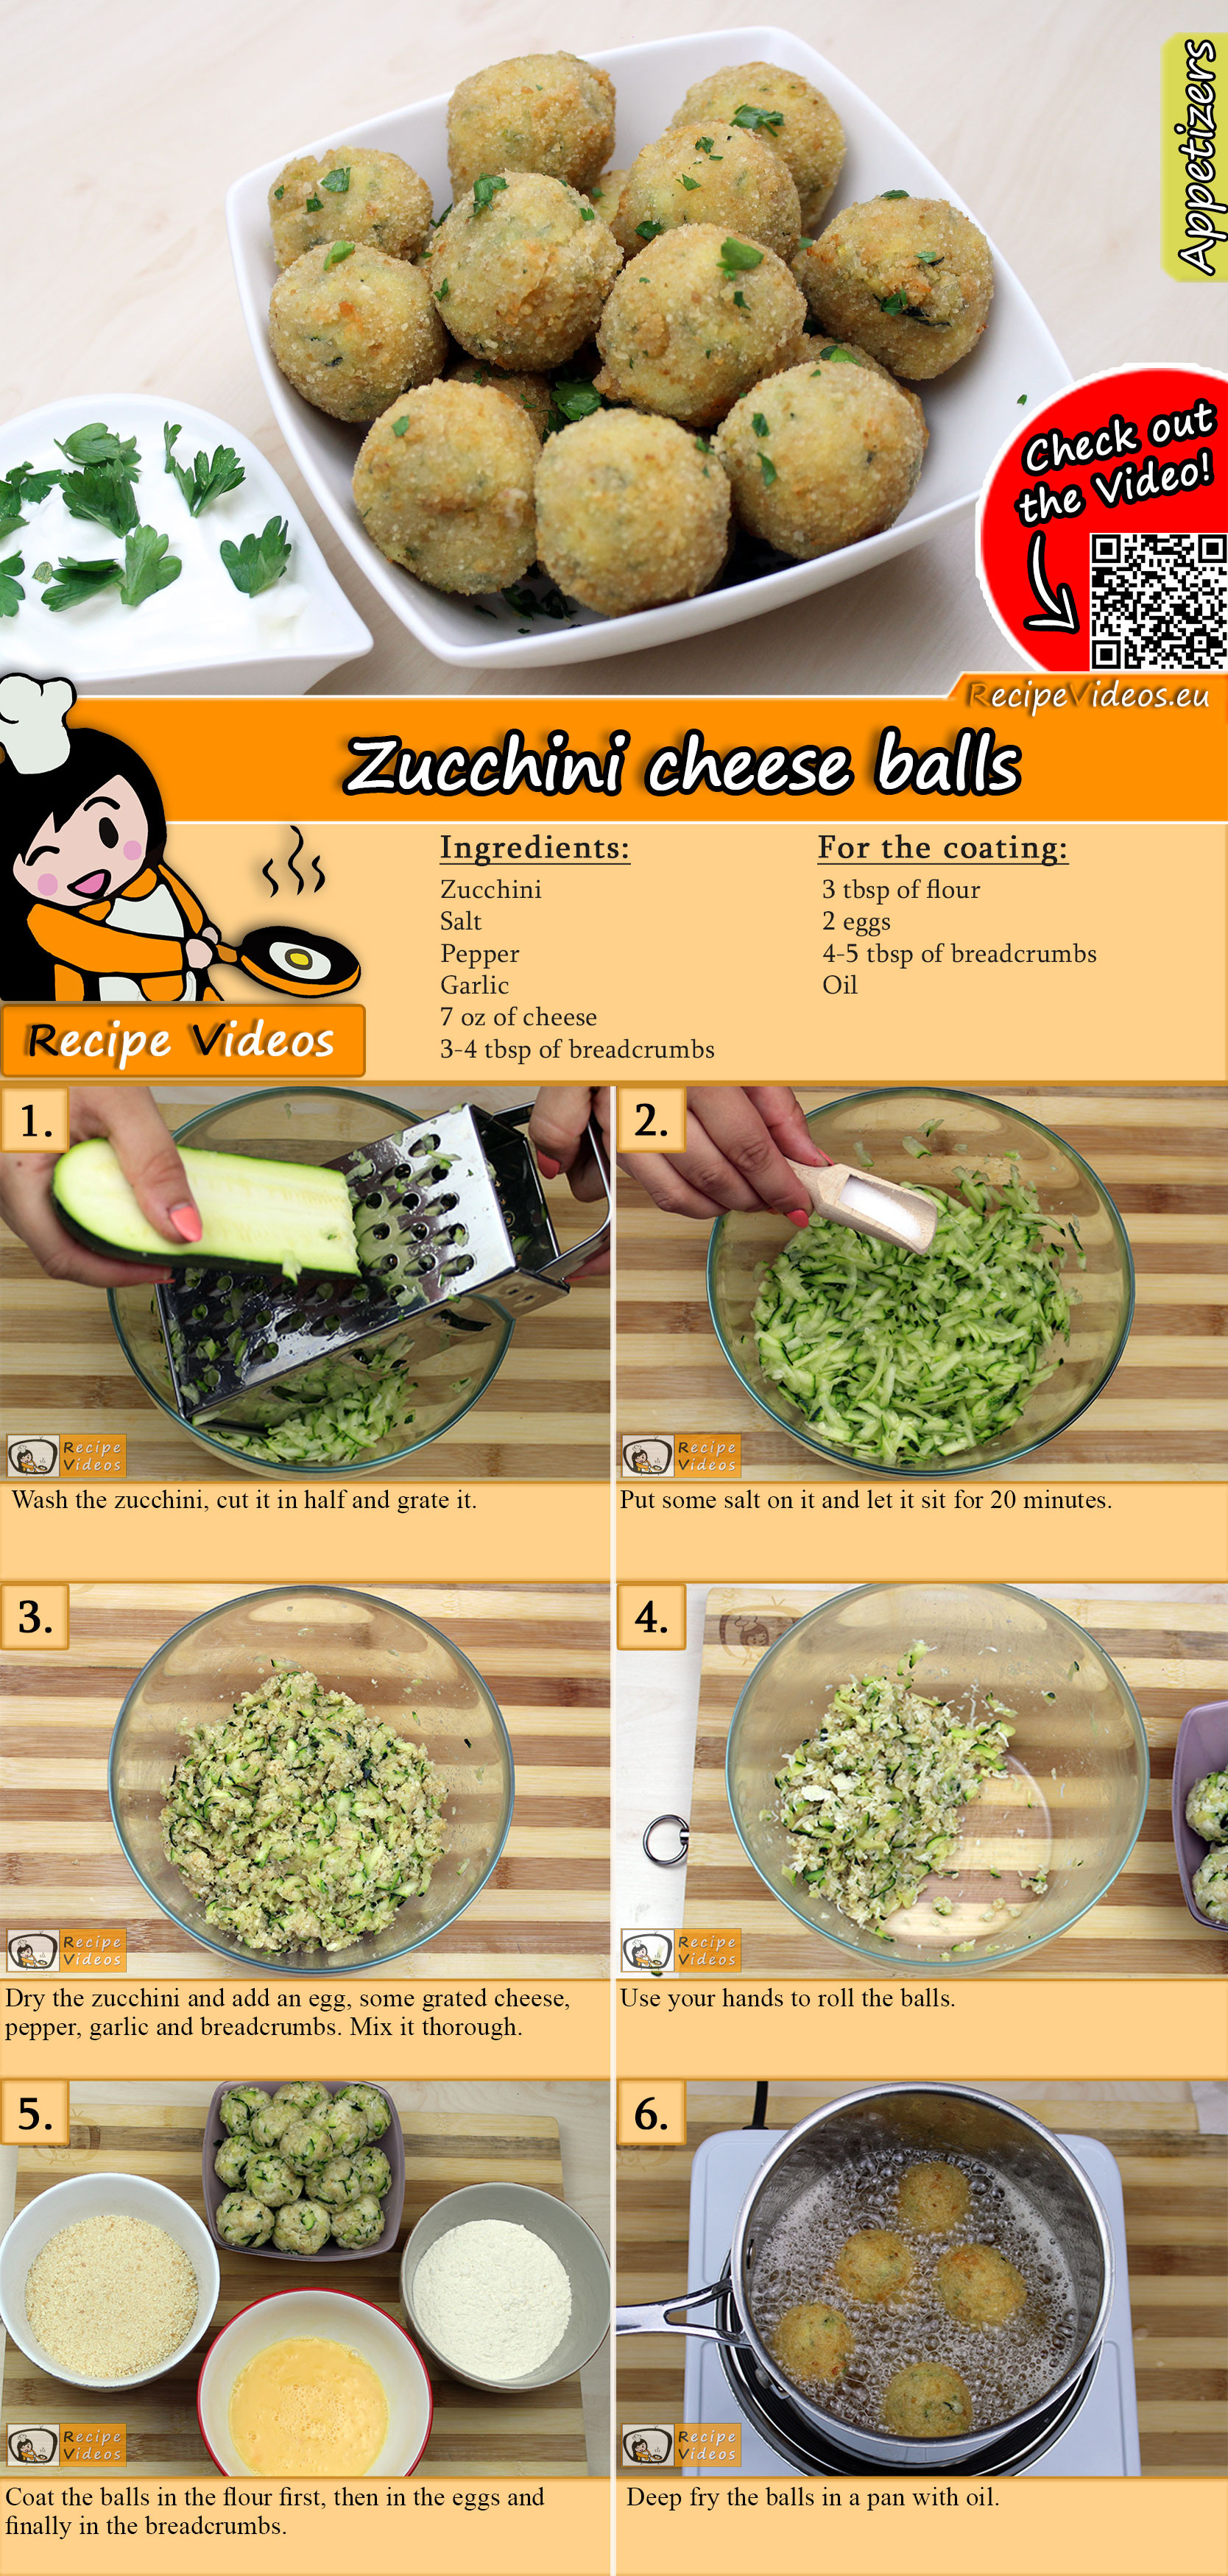 Zucchini cheese balls recipe with video